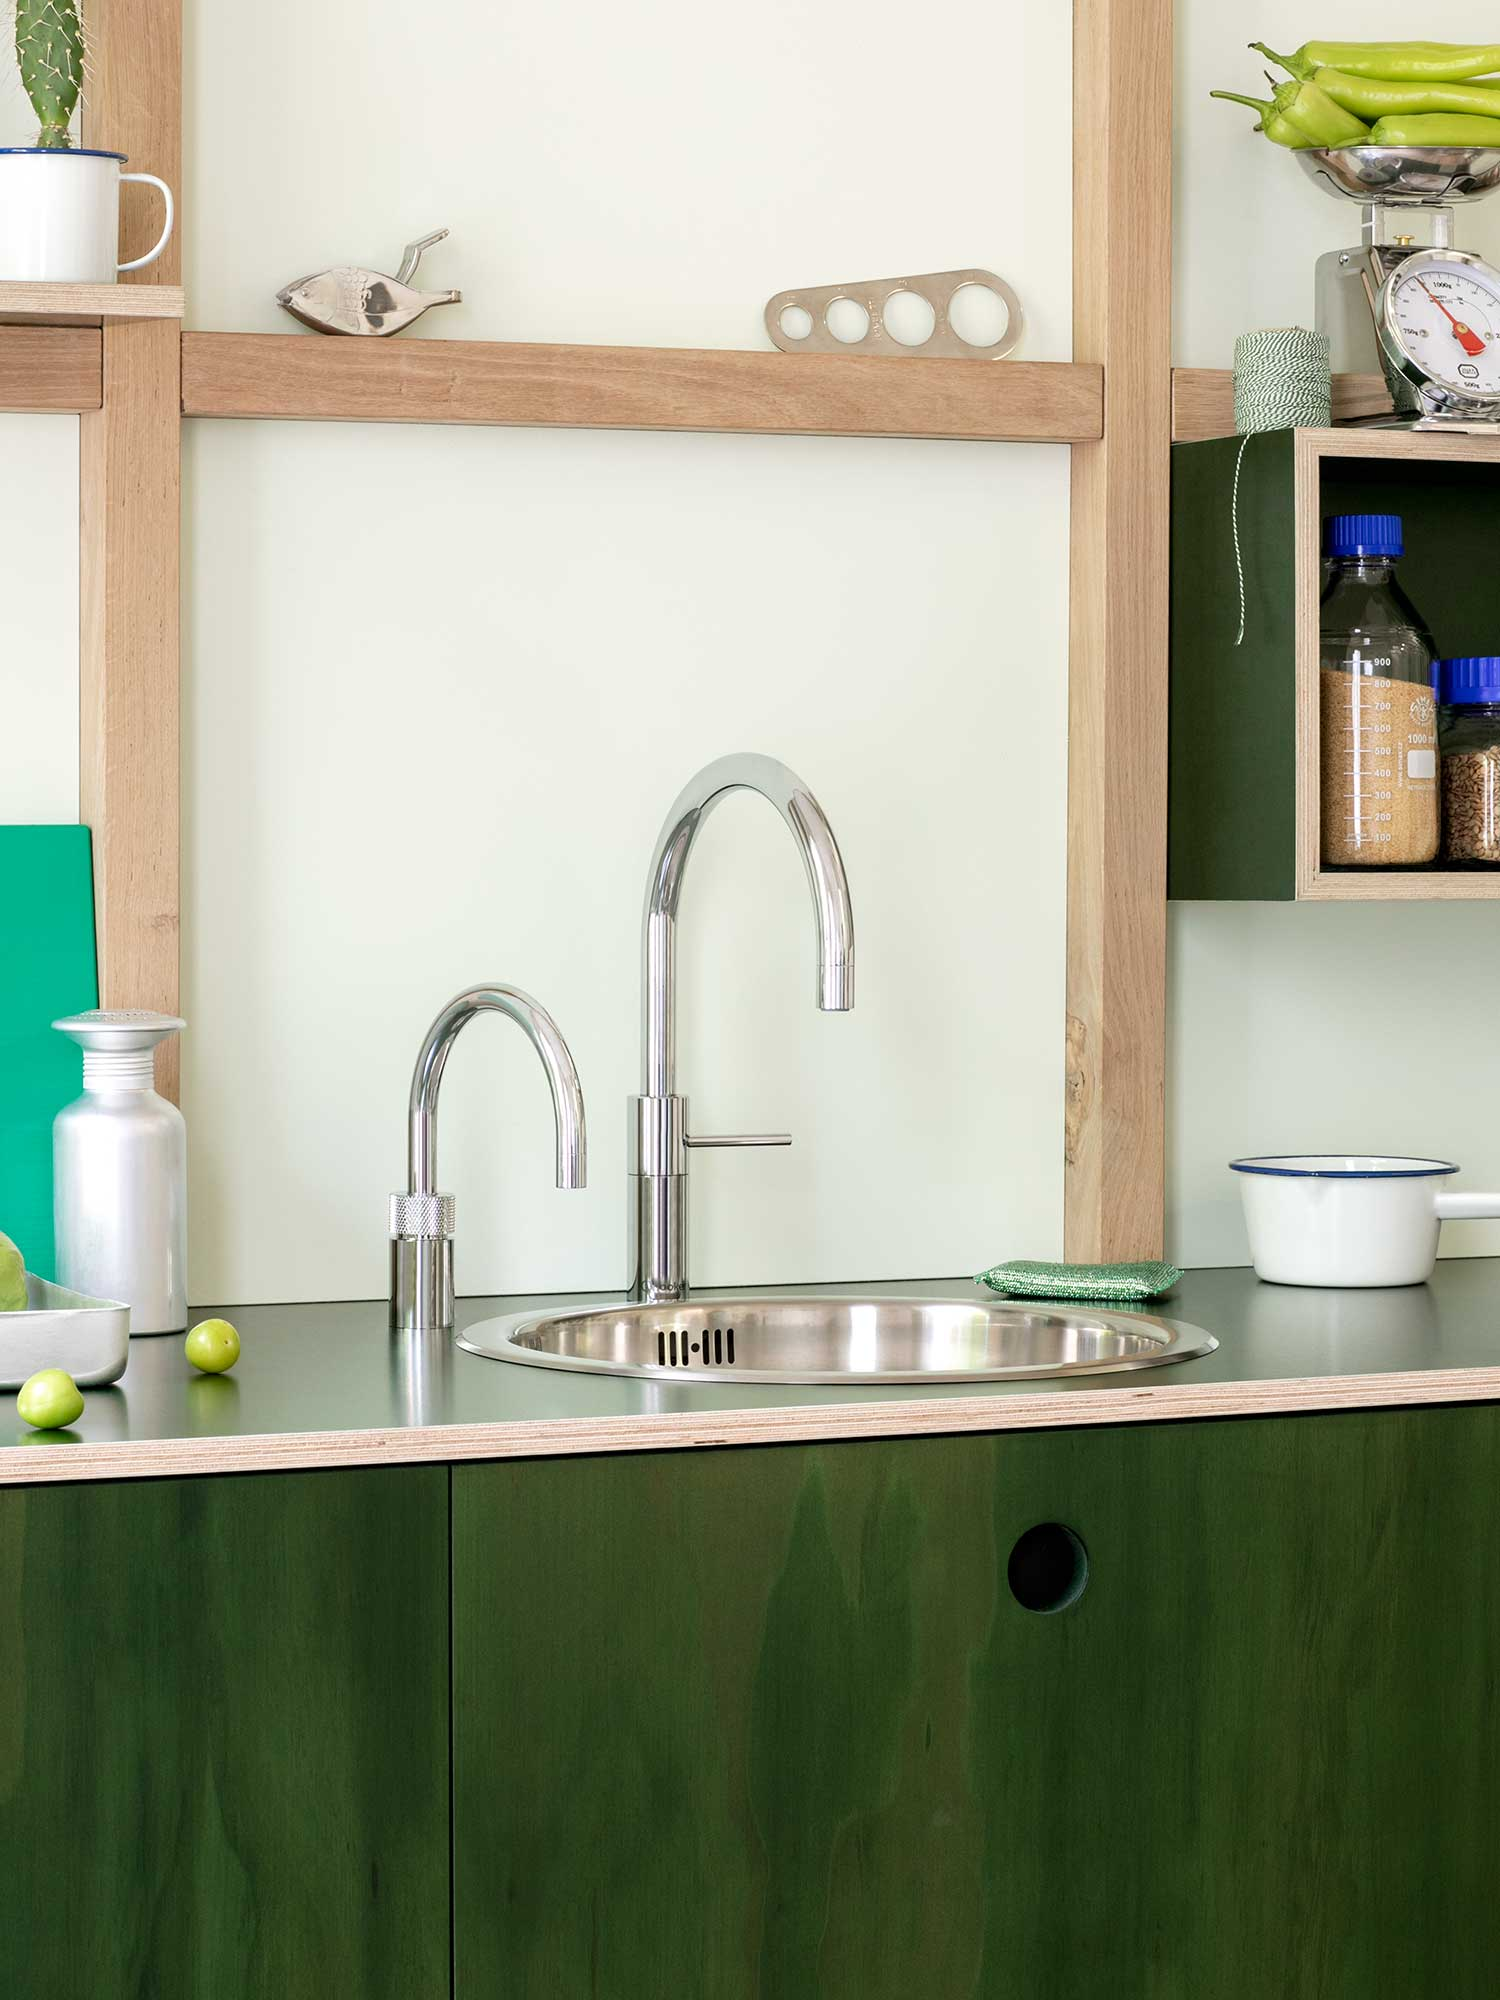 Quooker tap with nordic round design and sink on green counter